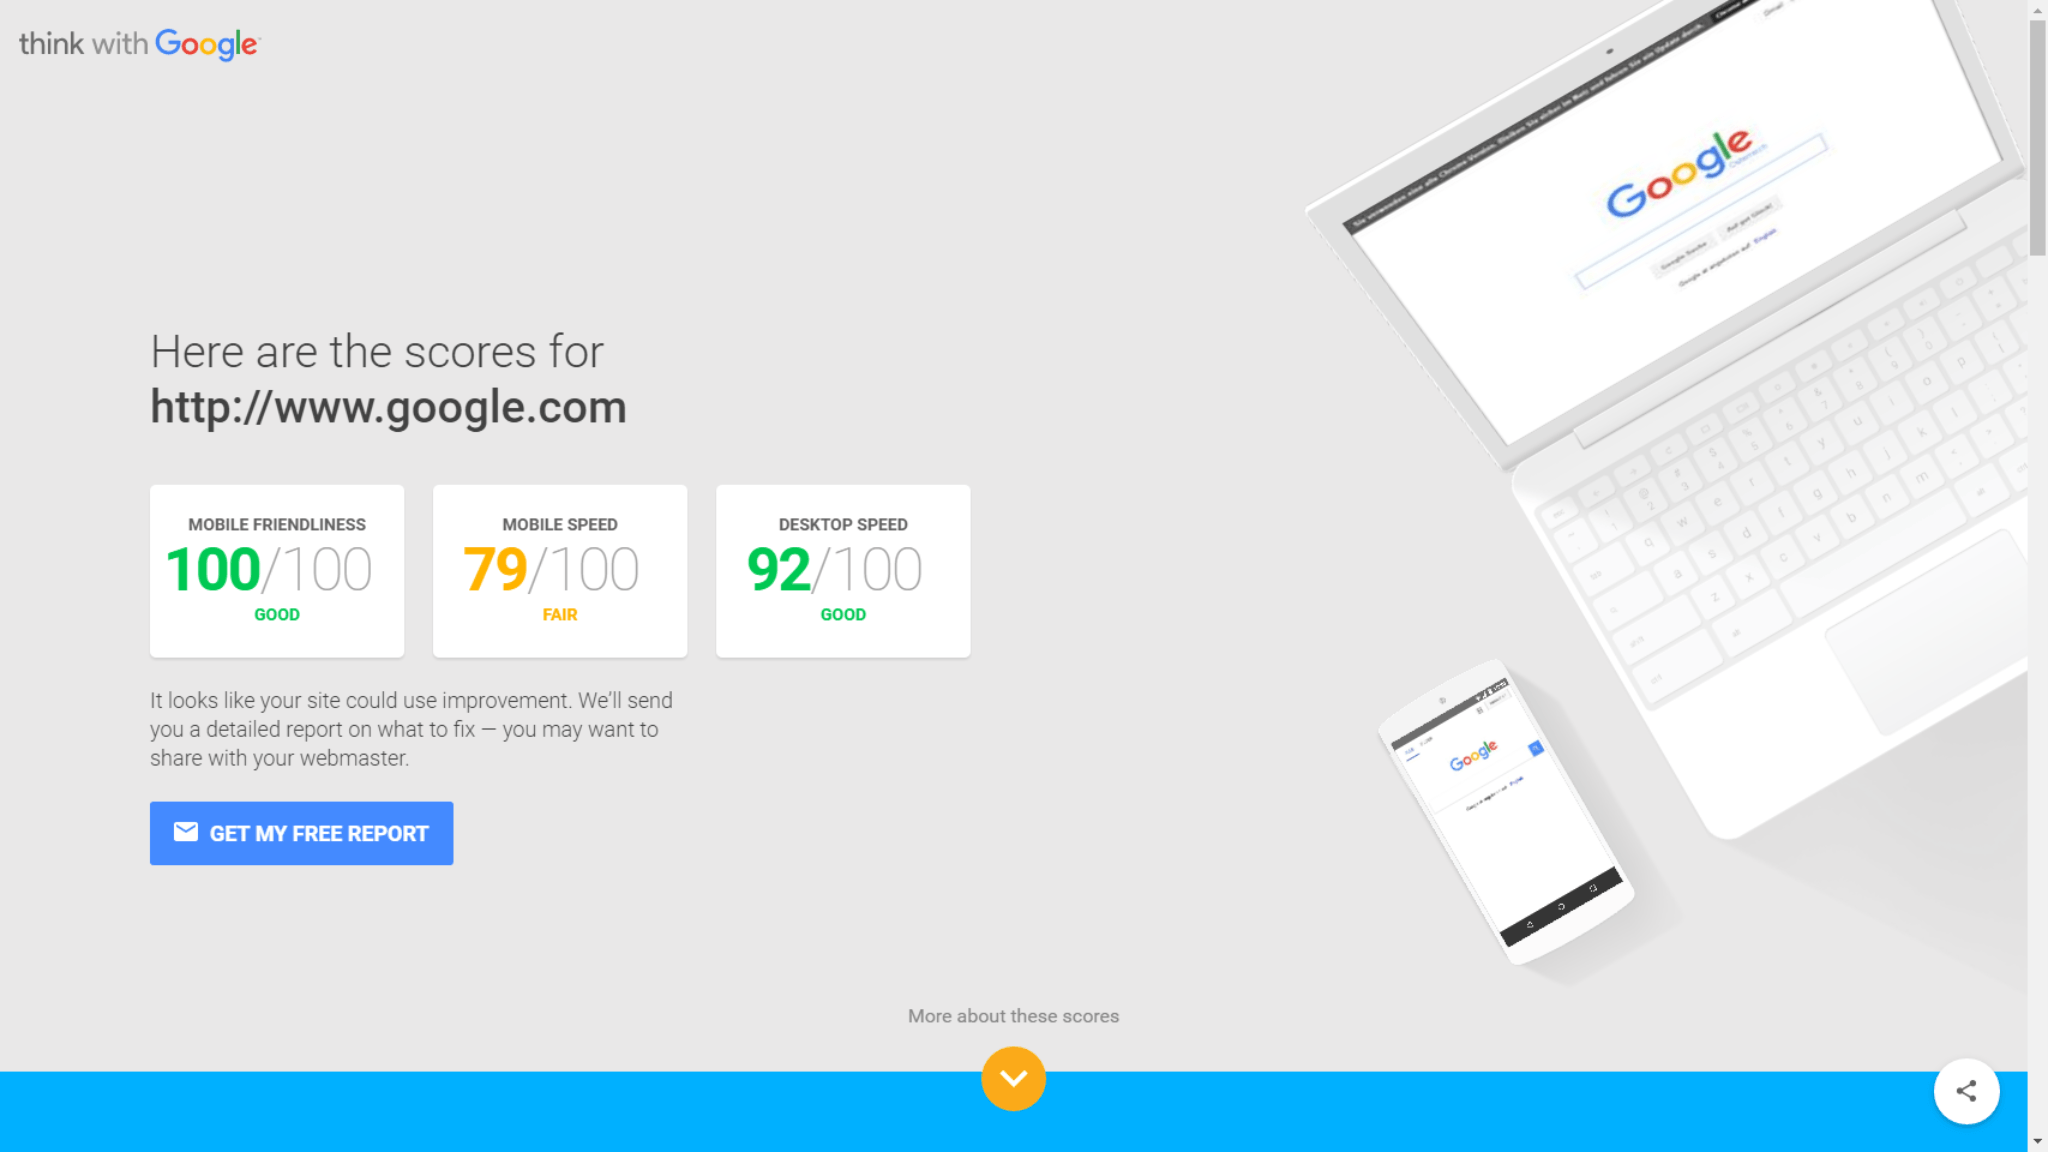 mobile googlecom